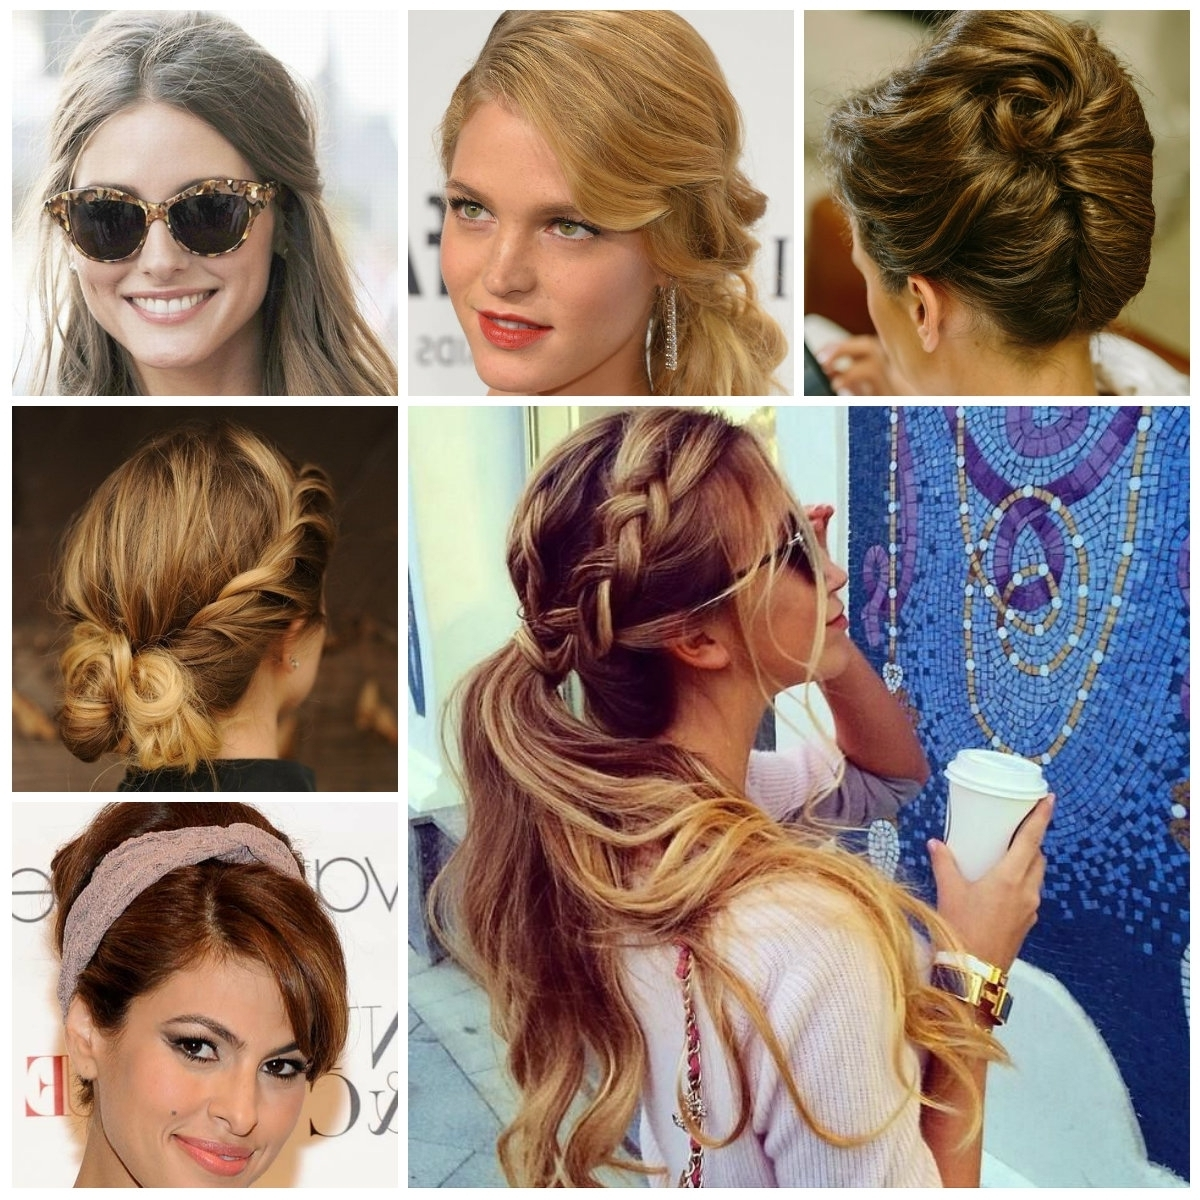 Easy Casual Updo Hairstyles For Long Hair – Women Medium Haircut For Cute Updo Hairstyles For Long Hair (Gallery 8 of 15)